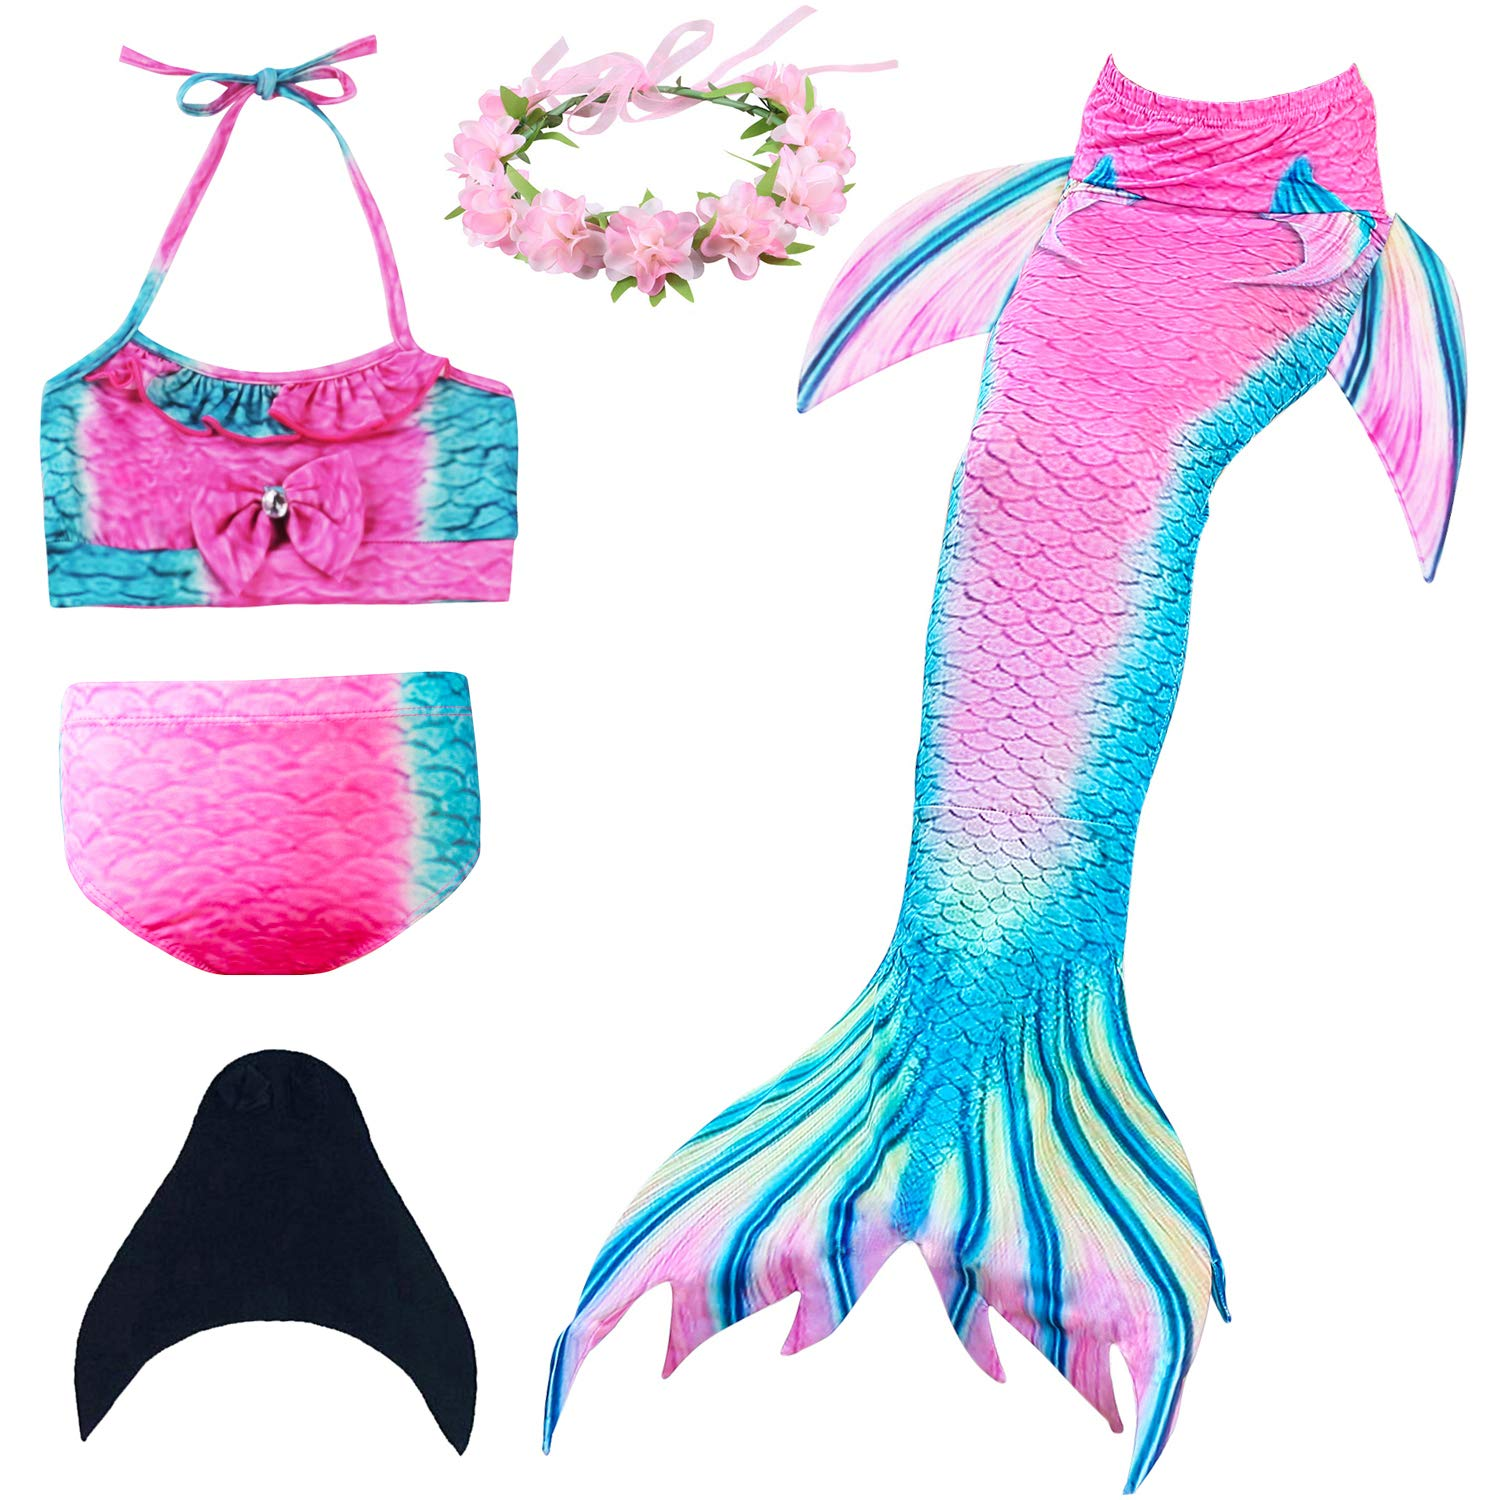 5d8c4ccb70a65 Mermaid Tail Include:1pc Top +1pc Underwear +1pc Mermaid Tail and Gift  Random color Sunflower Headband.Kind Note: Monofin not included (Recommend  Purchase ...